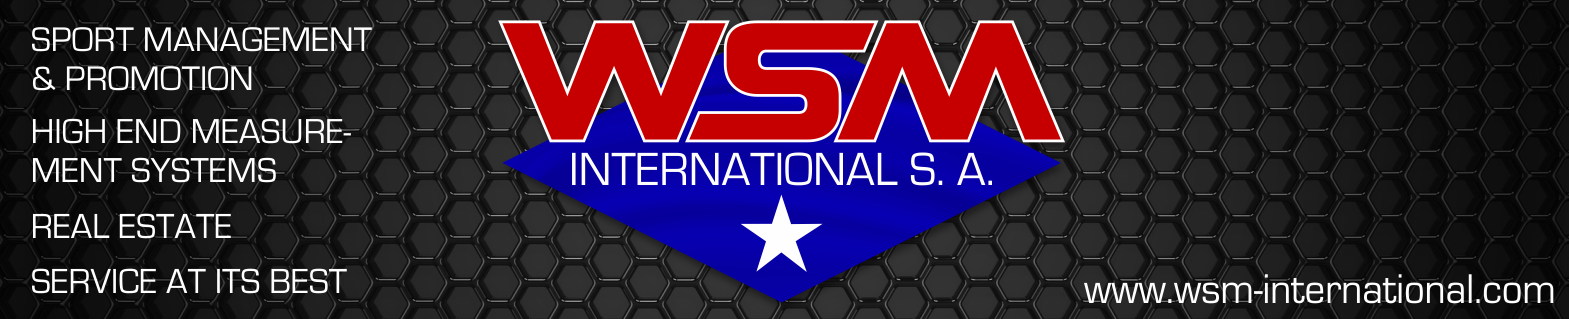 WSM International S.A. Logo